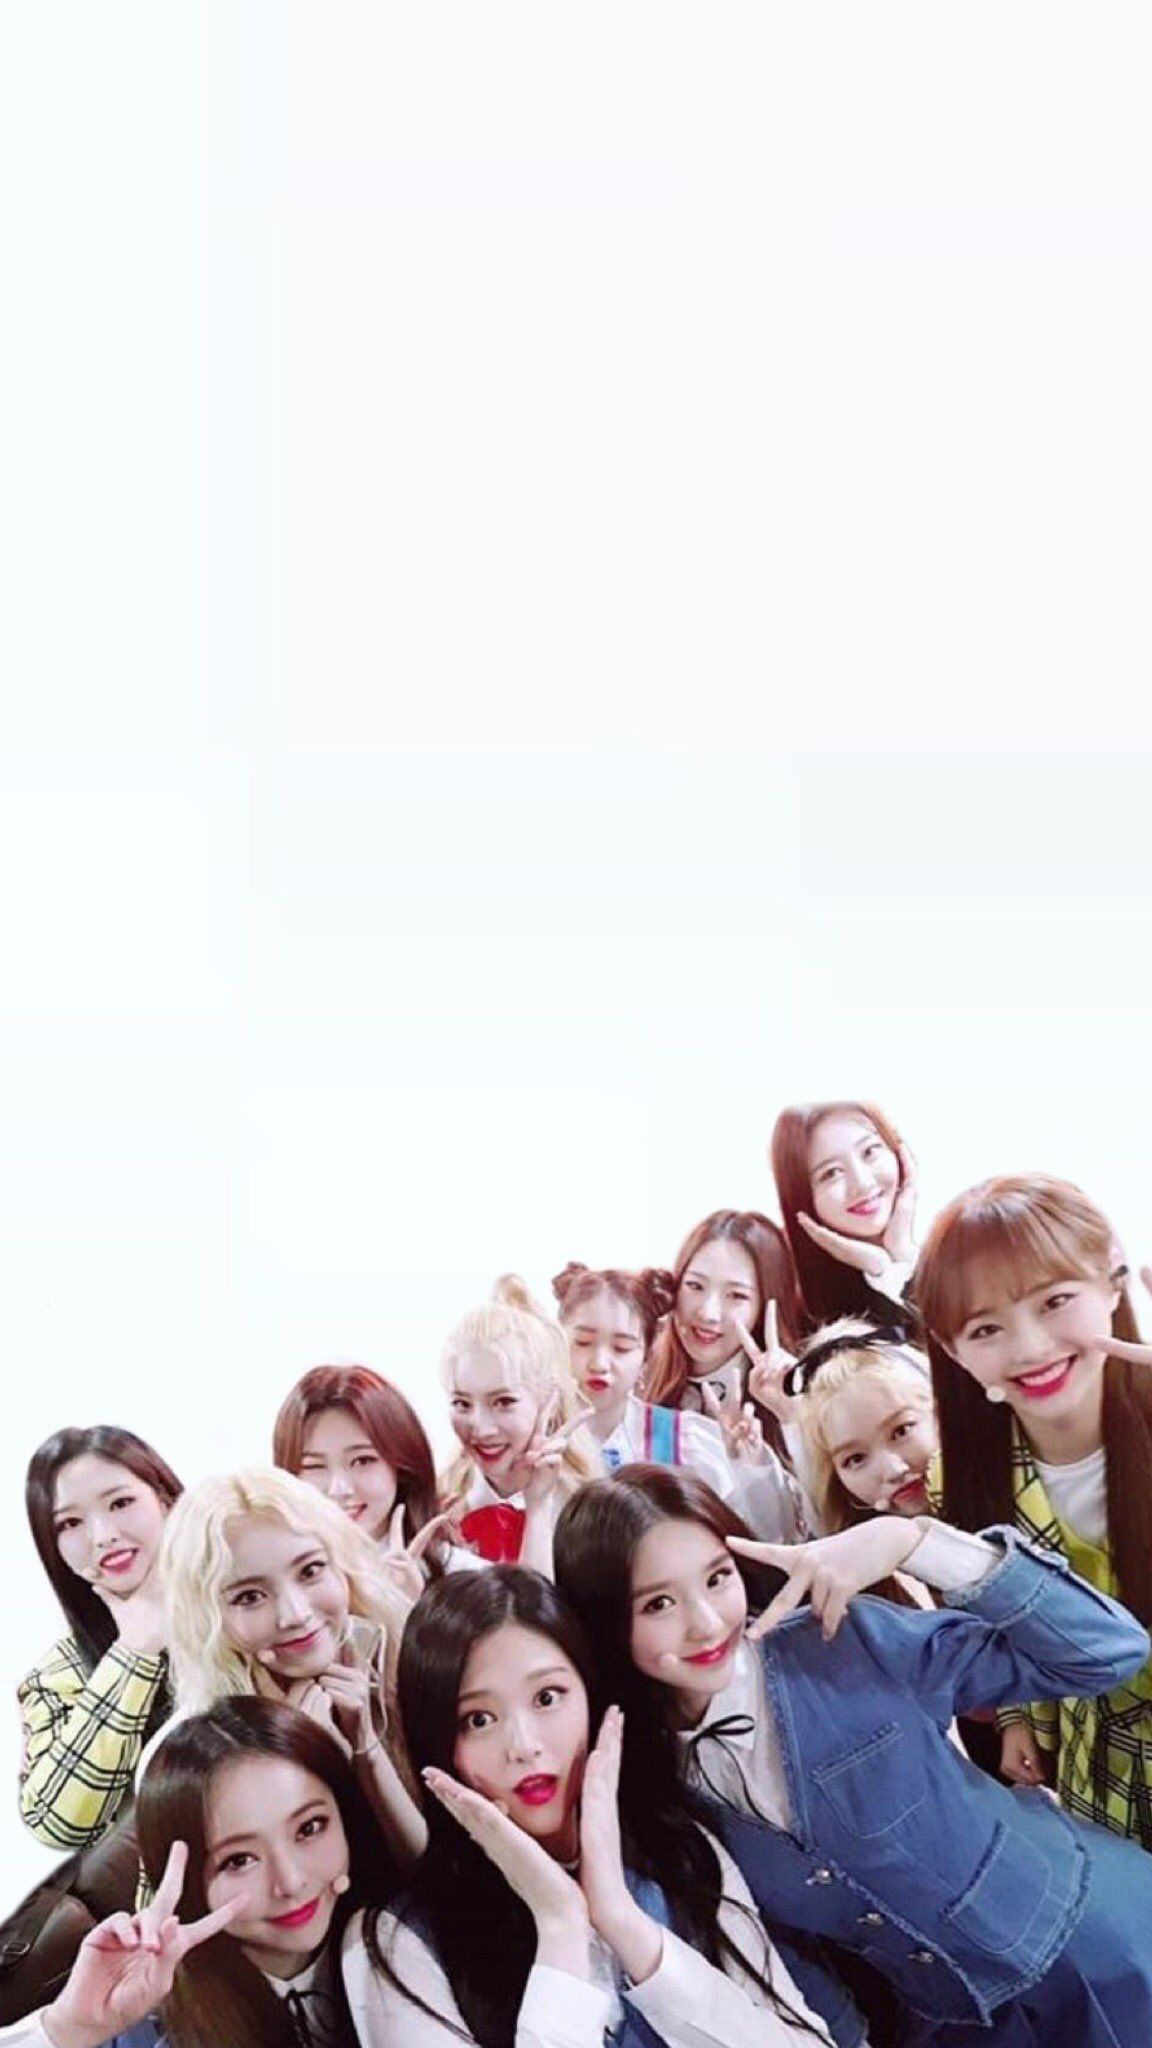 Loona For Phone Backgrounds Phone Backgrounds Background Couple Photos